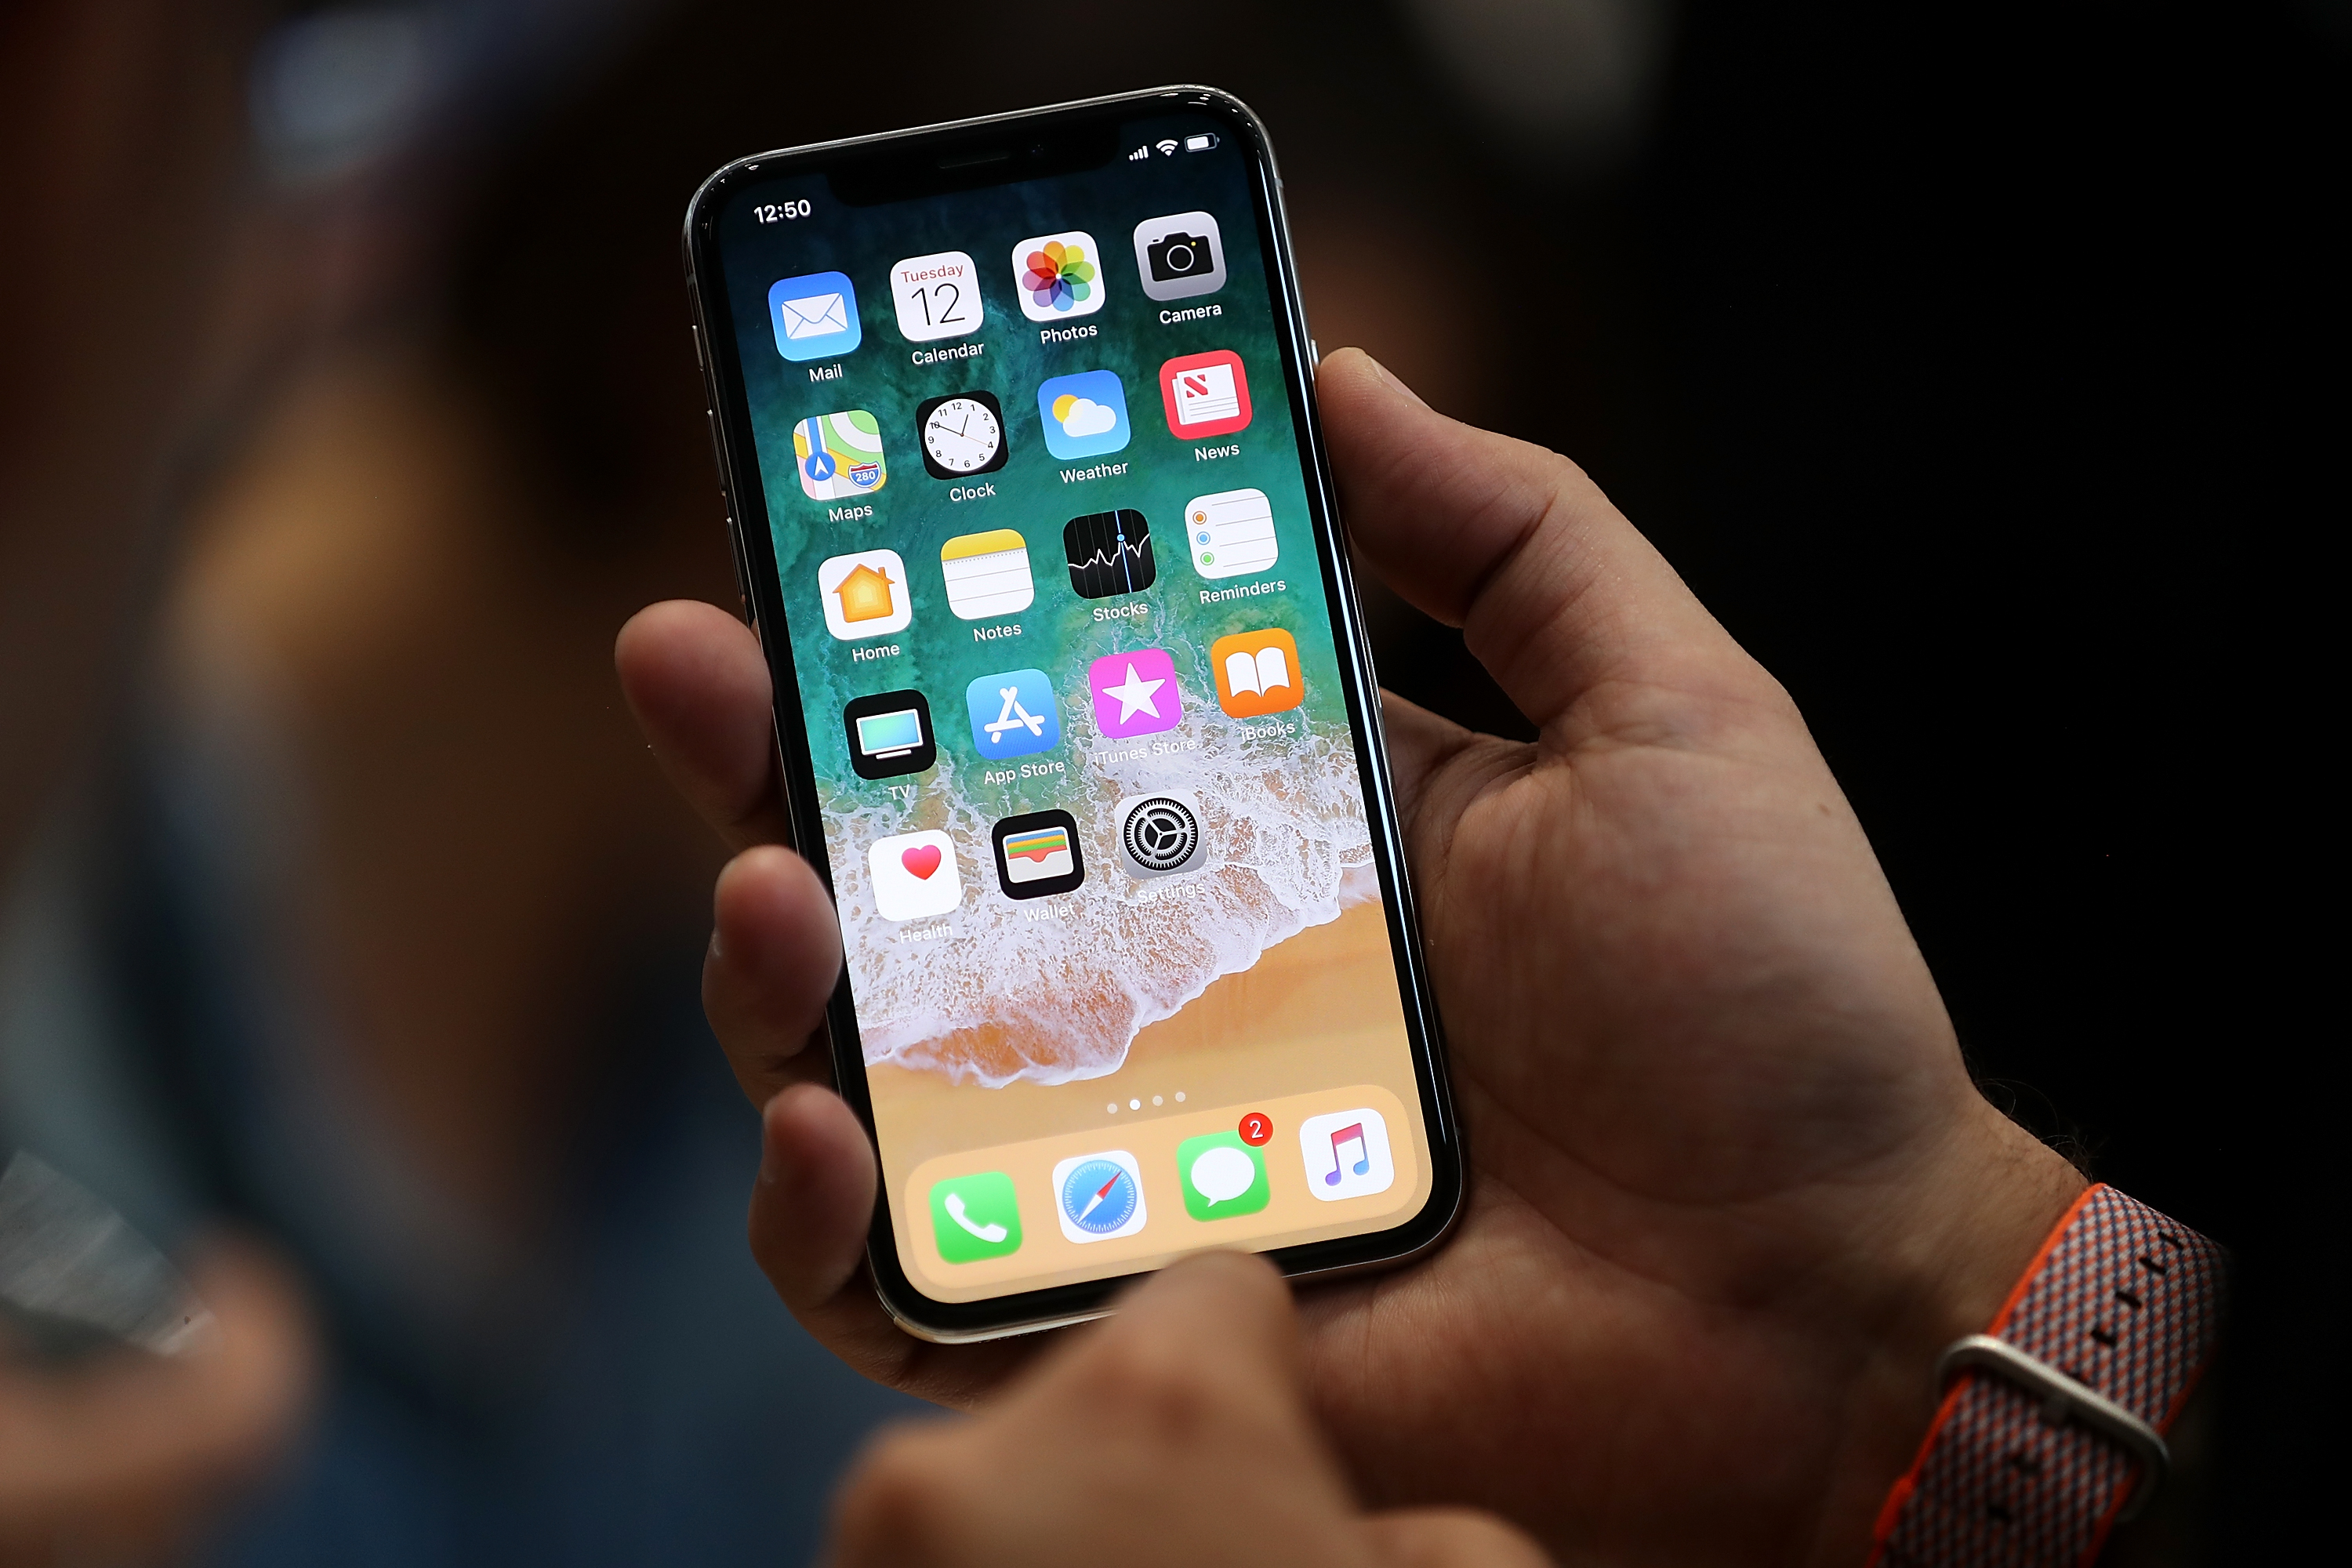 The new iPhone X is displayed during an Apple special event at the Steve Jobs Theatre on the Apple Park campus on September 12, 2017 in Cupertino, California.